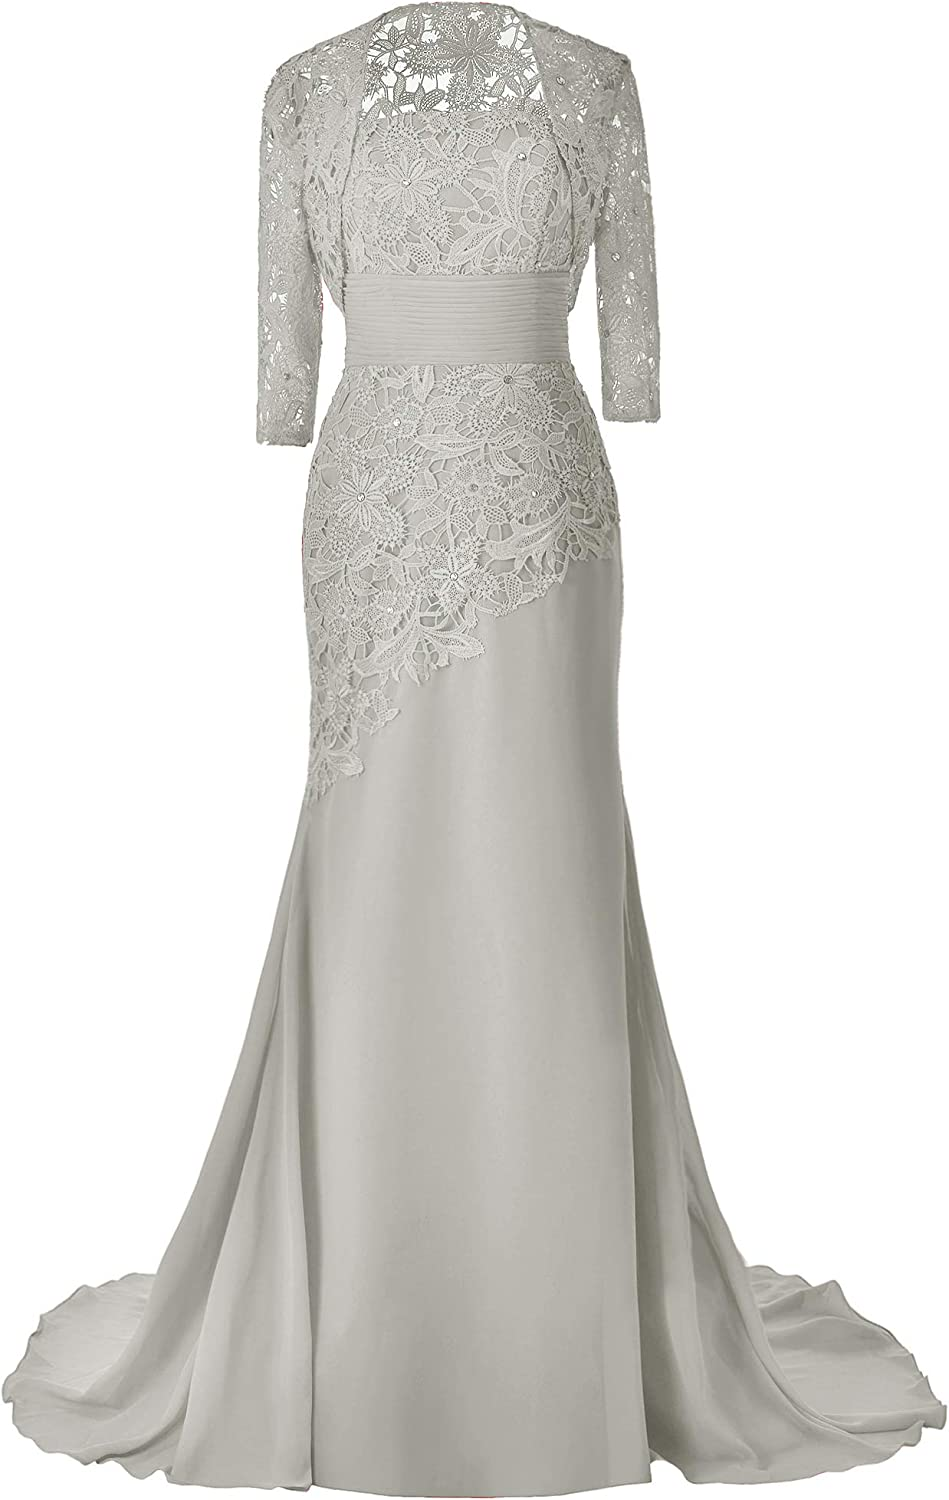 Pretygirl Women's Lace Long Mother of The Bride Dress with Jacket Formal Evening Gowns (US 14, Silver Grey)